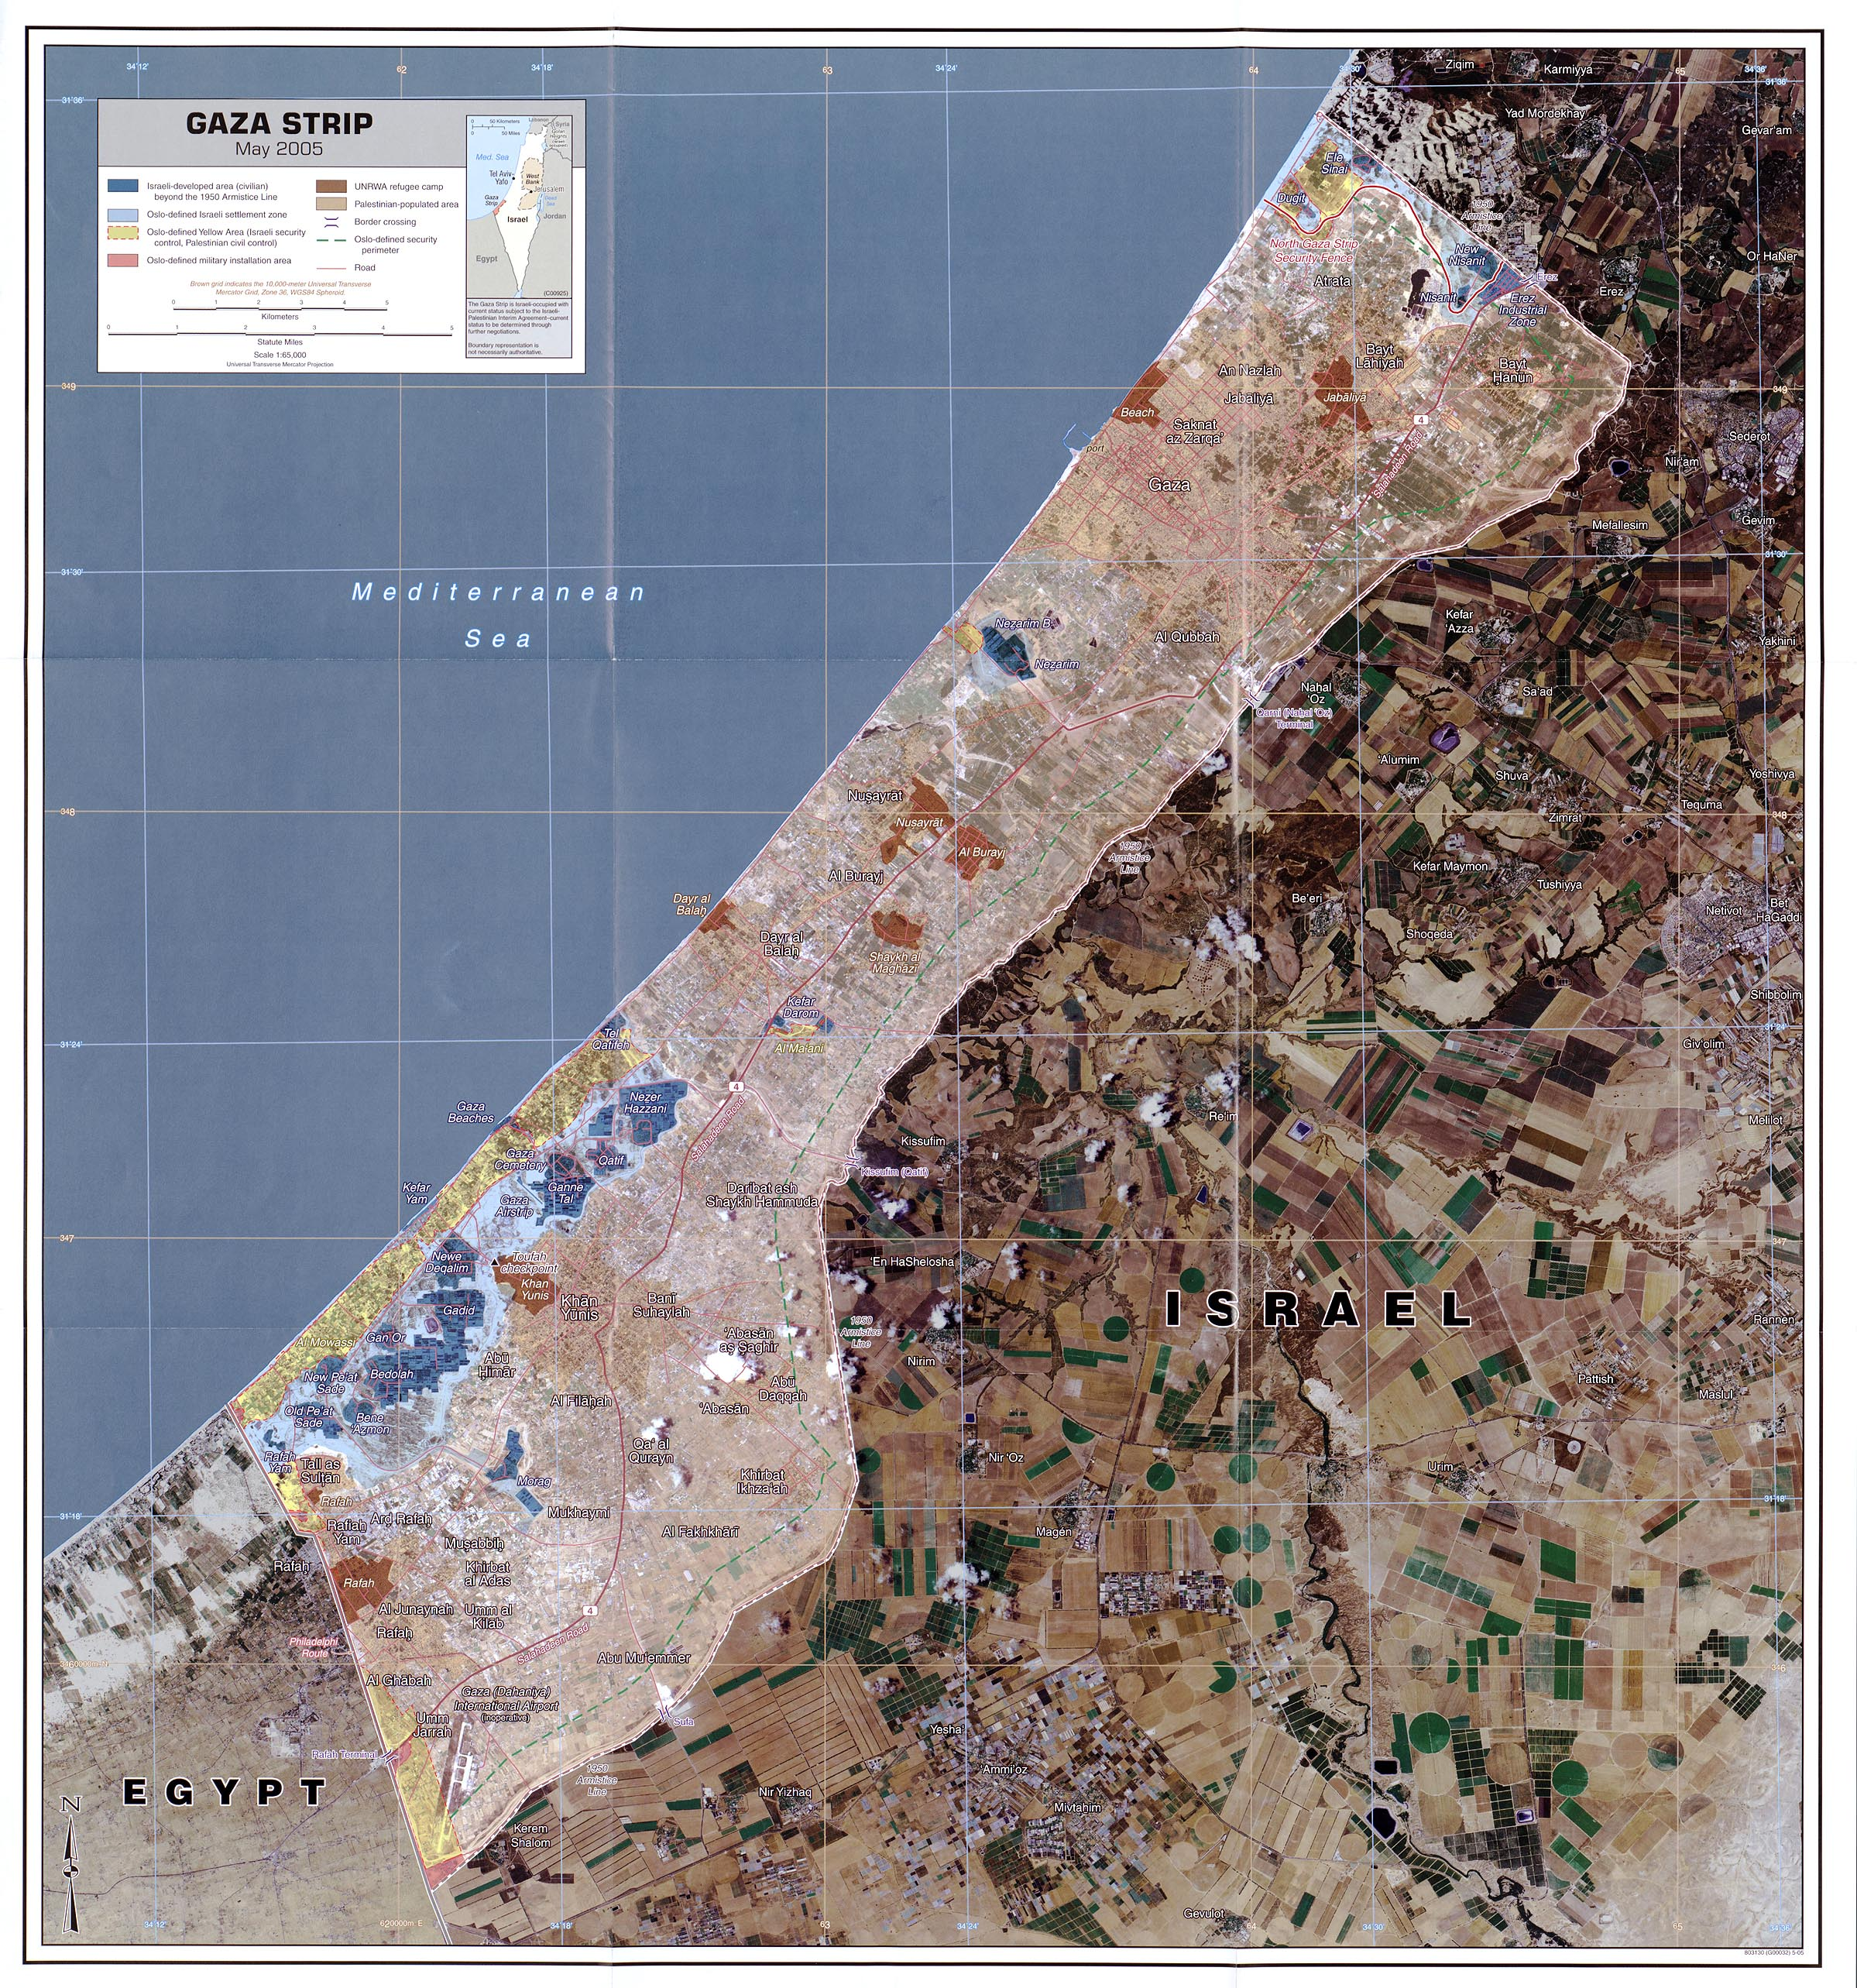 Israeli disenement from Gaza - Wikipedia on georgia map, persian gulf map, hamas map, saudi arabia map, iran map, ashkelon map, beersheba map, tel aviv map, syria map, dead sea map, cairo map, bactria map, jordan map, israel map, ukraine map, chechnya map, japan map, beirut map, middle east map, jerusalem map,